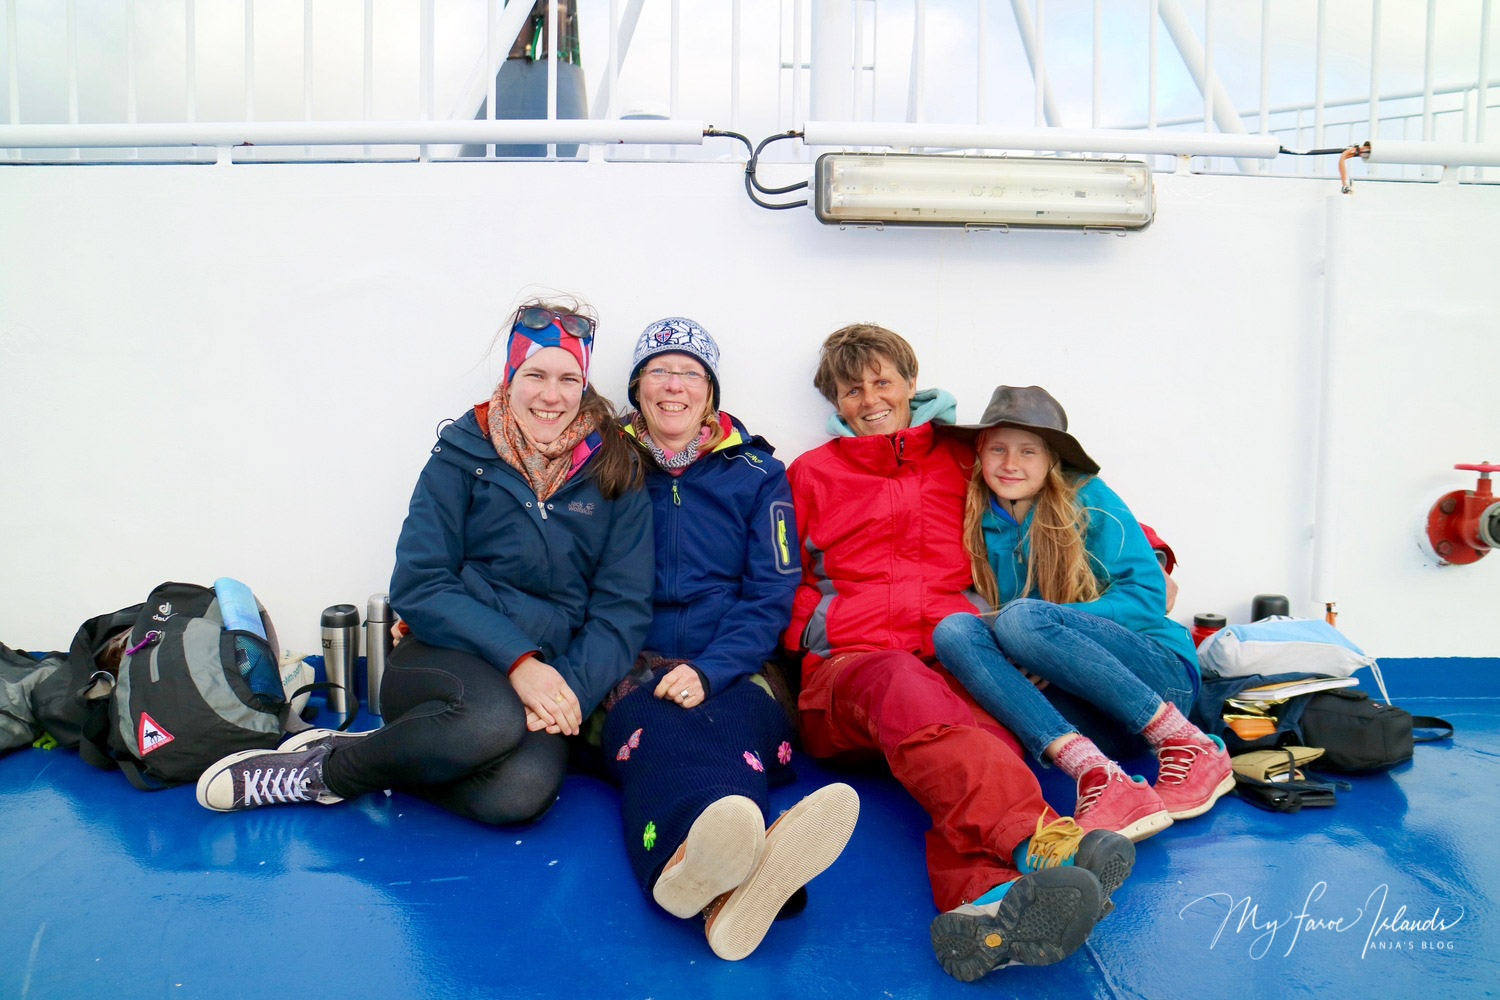 From left to right: Henriette (23), Christina (50), Nicola (52) and Jette (12). Picture below: Arriving in the Faroese capital Tórshavn. Within sight: the historic district Tinganes